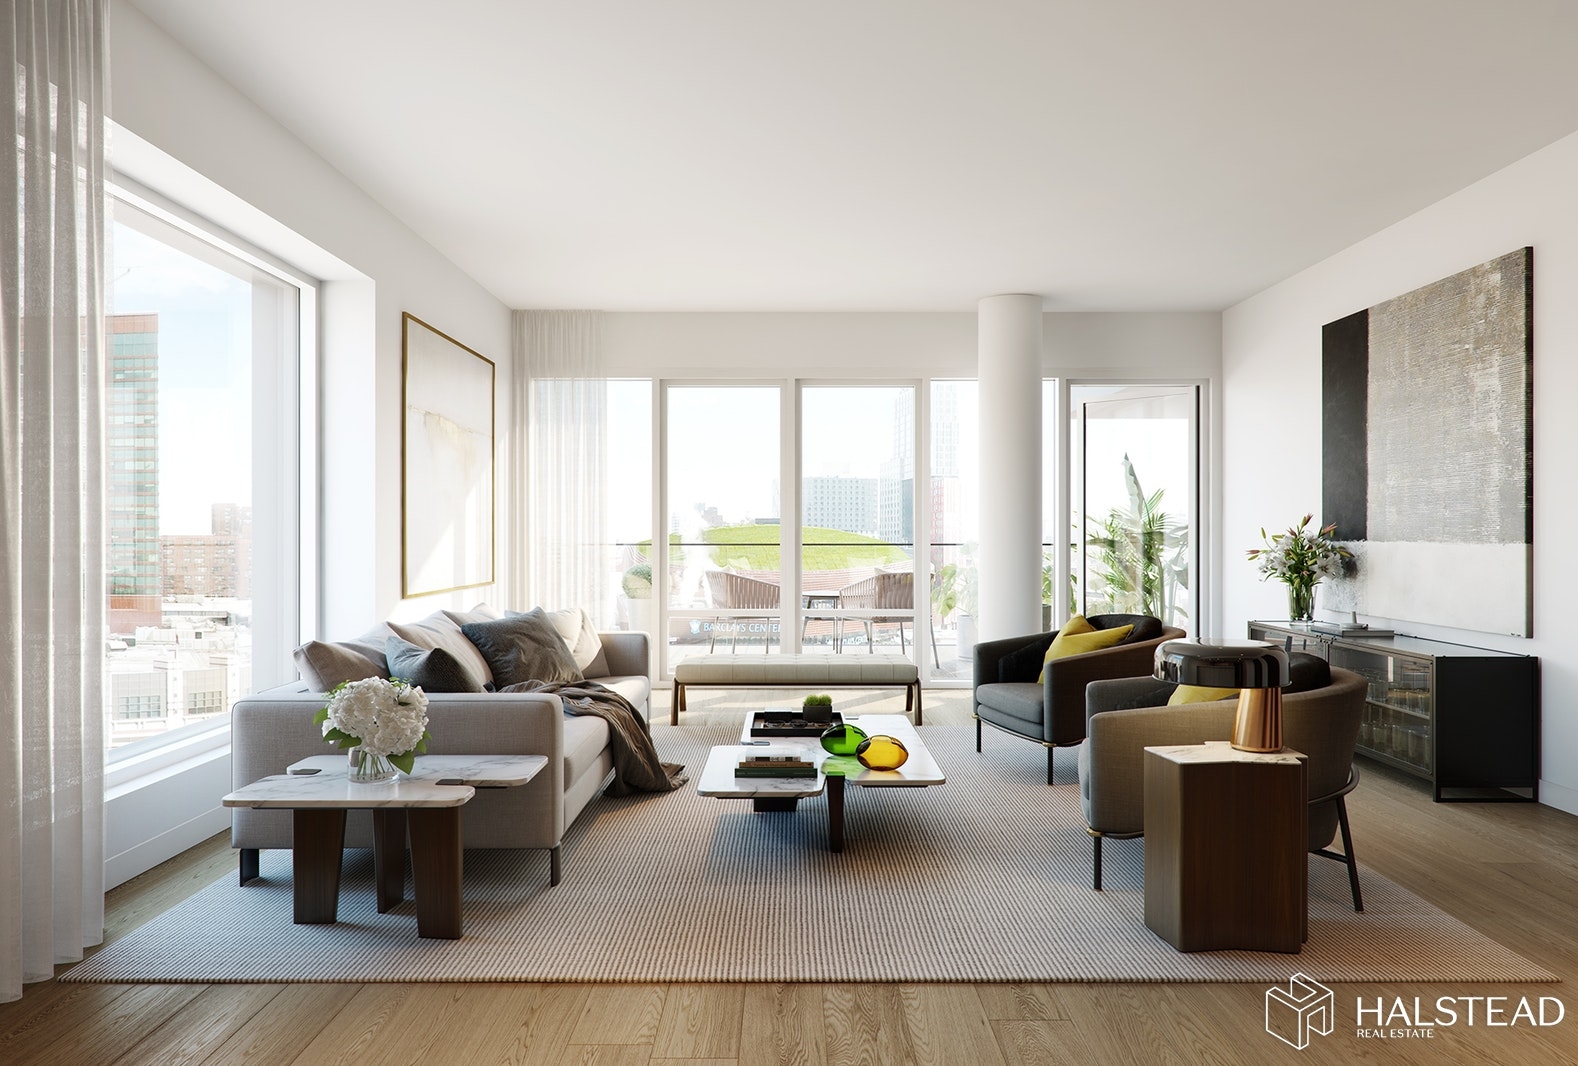 561 Pacific Street 703, Boerum Hill, Brooklyn, NY, 11217, $2,795,000, Property For Sale, Halstead Real Estate, Photo 1